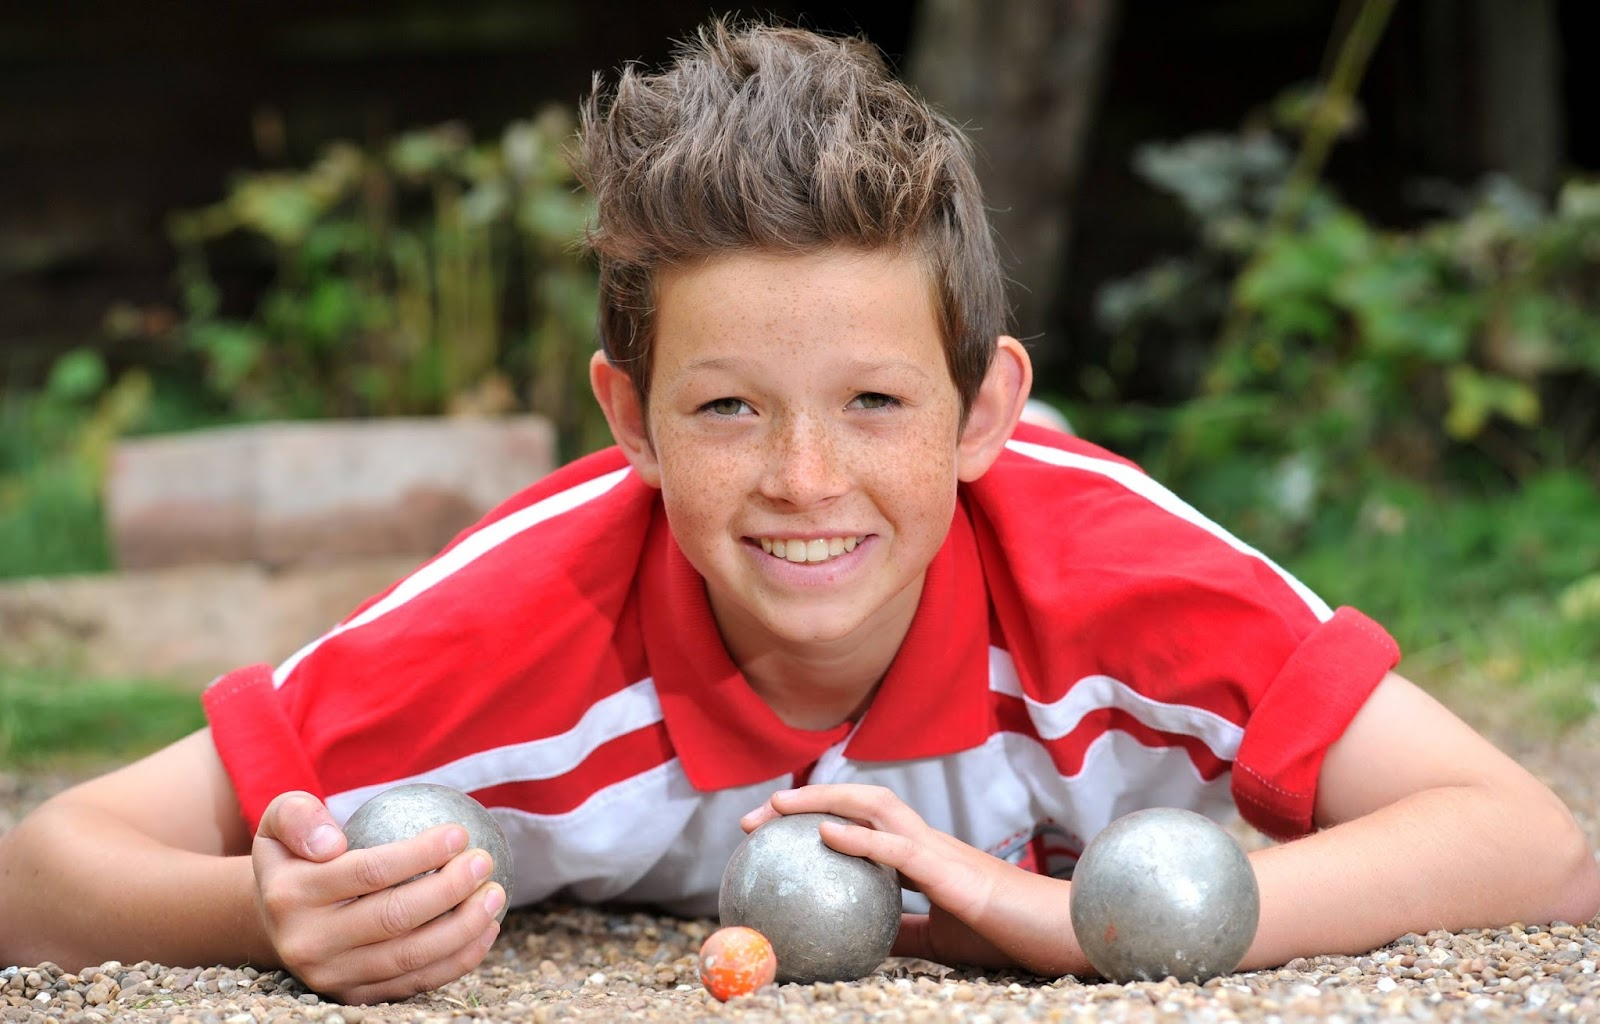 Petanque - Daniel Raine, 12, from the Groby Road area of Leicester, who's going to Thailand in October to represent England in the Petanque championships.